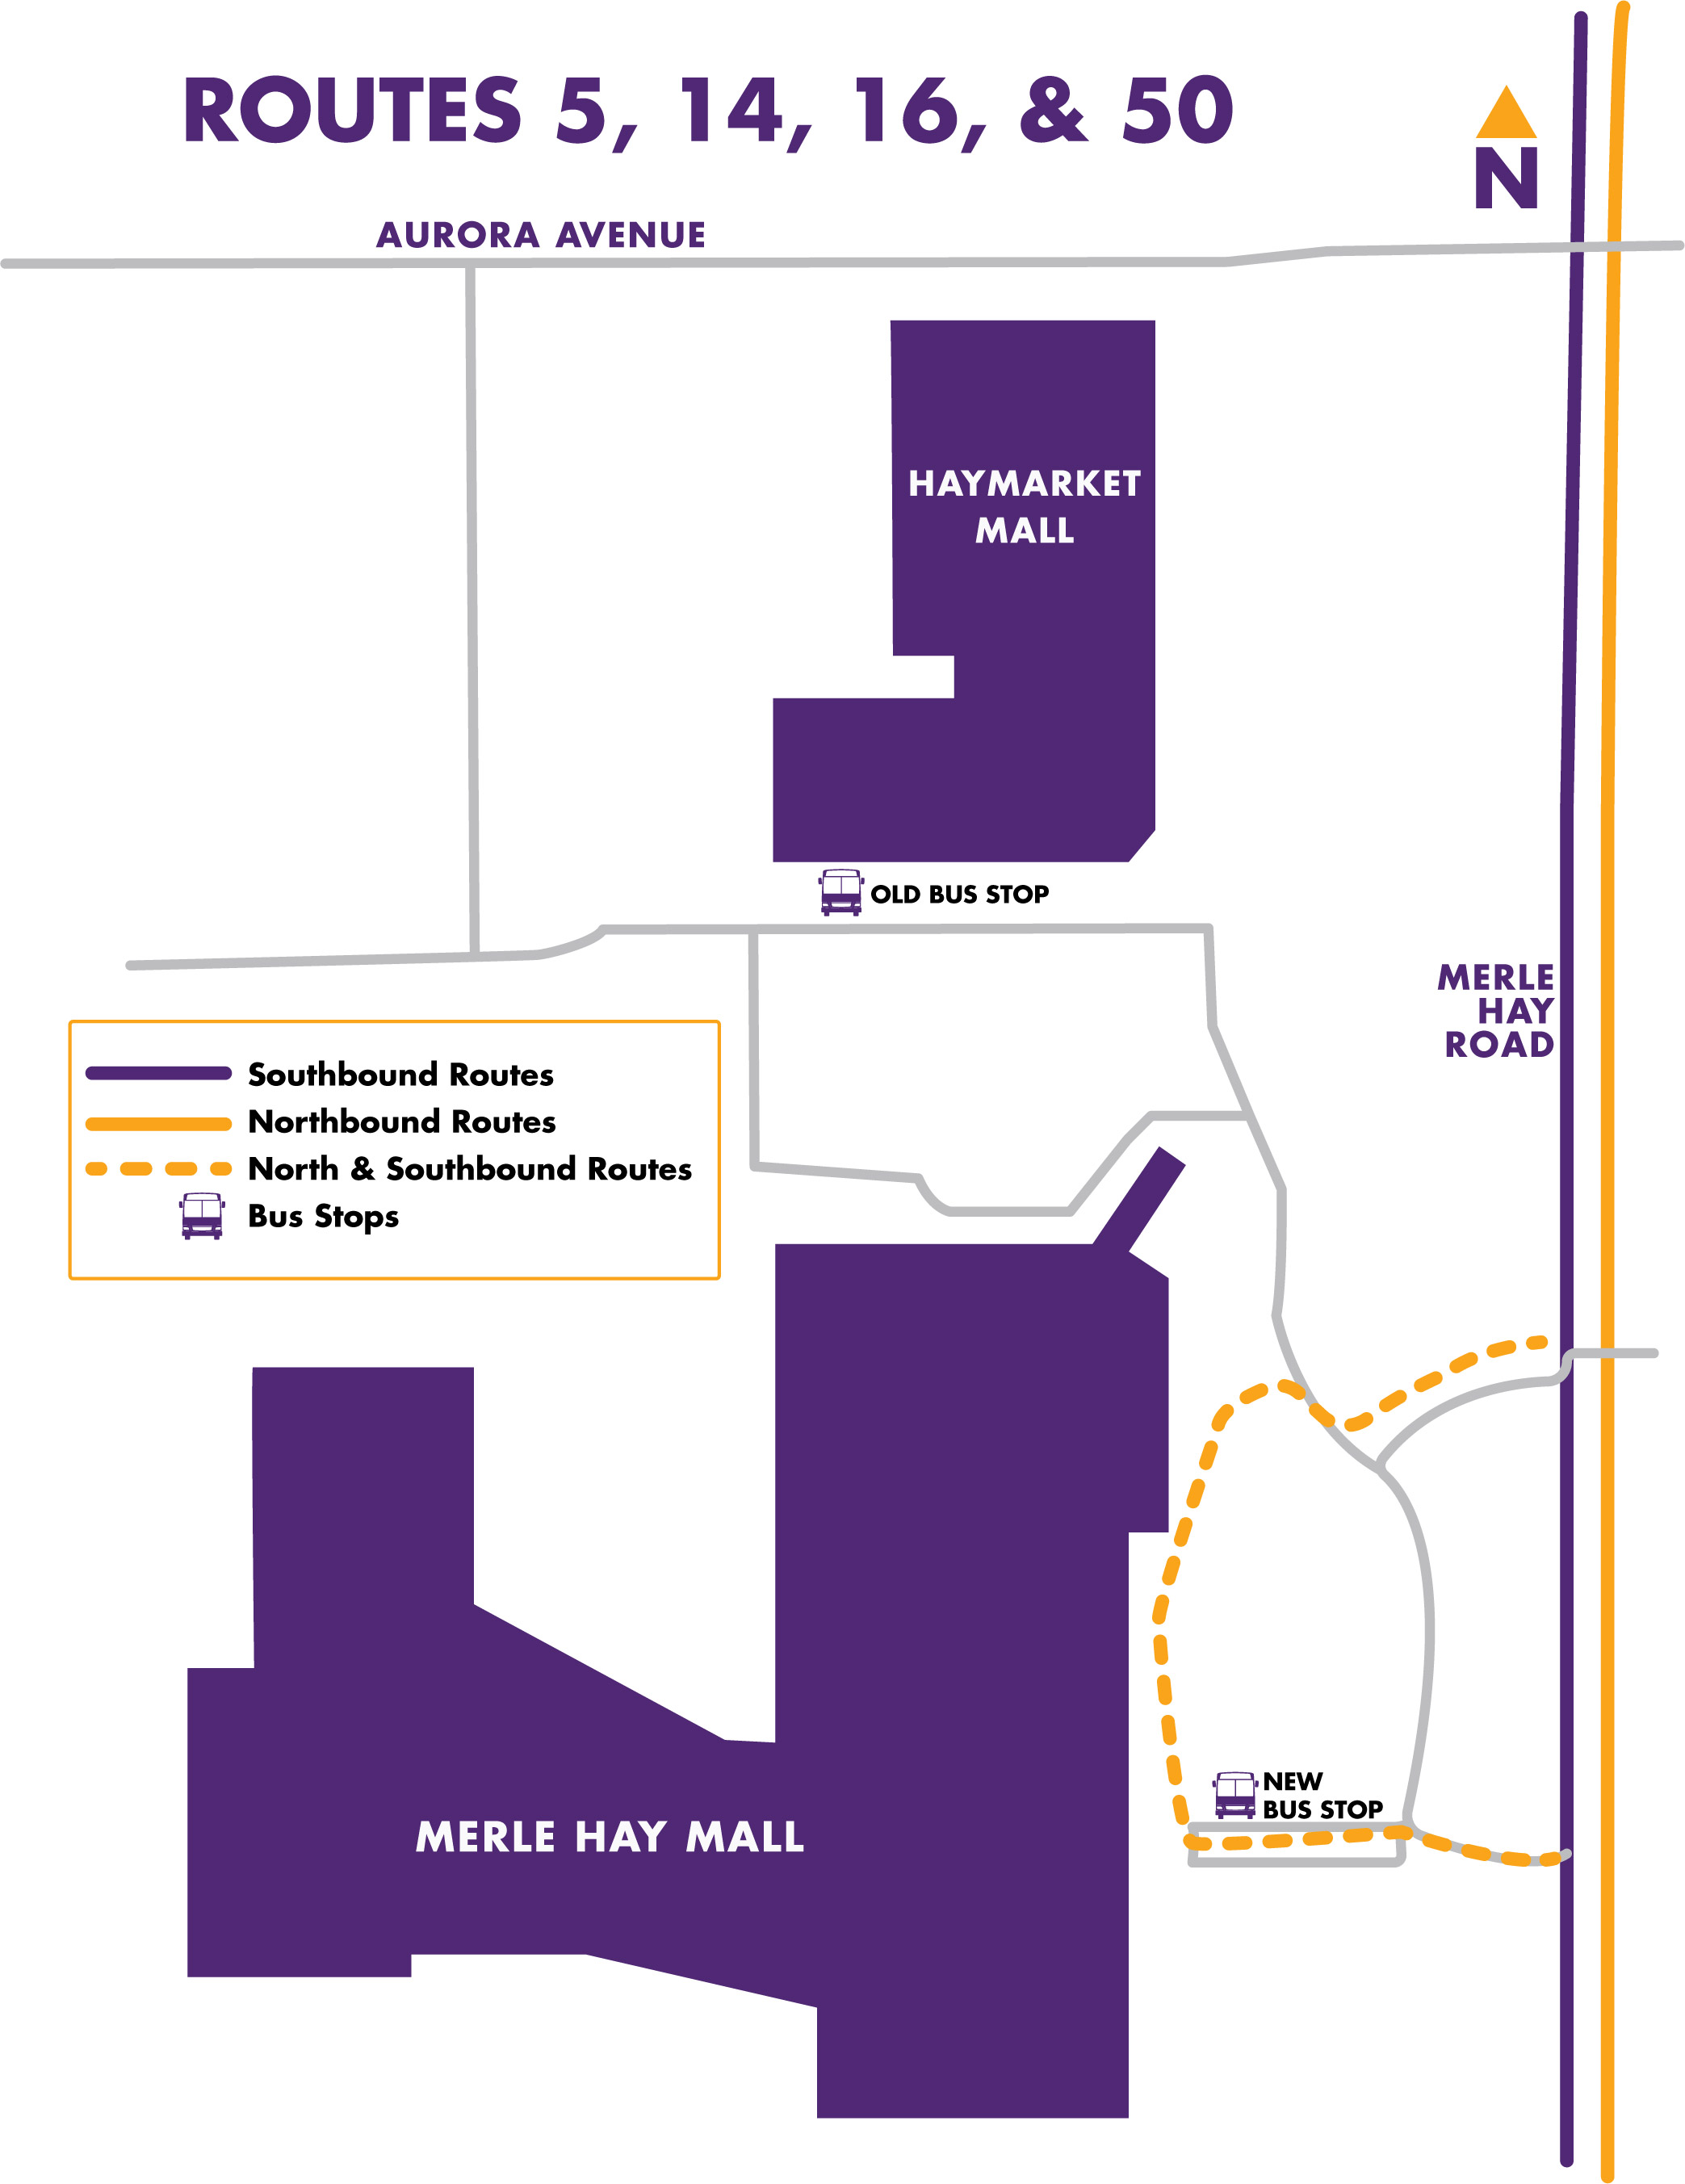 Map of detour moving bus stop from Haymarket Mall to Merle Hay Mall outside the main entrance.